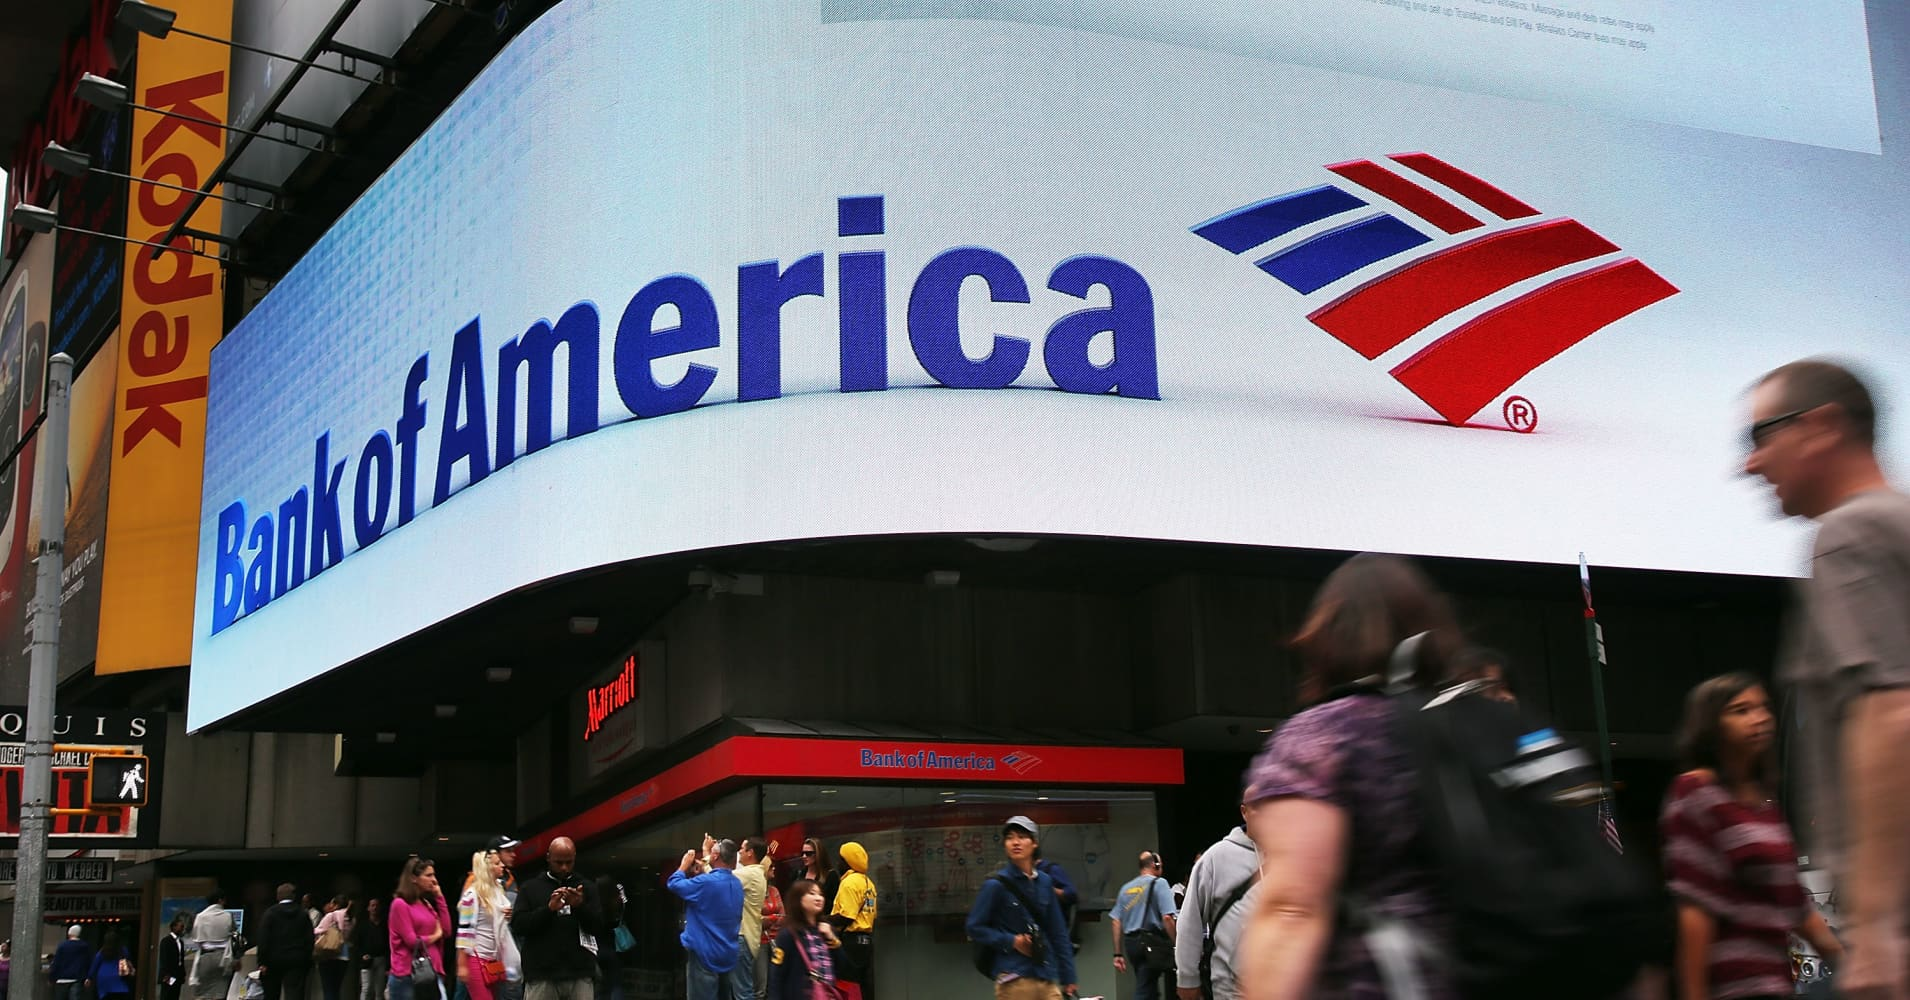 Bank Of America Paid Bonuses To Foreclose: Lawsuit